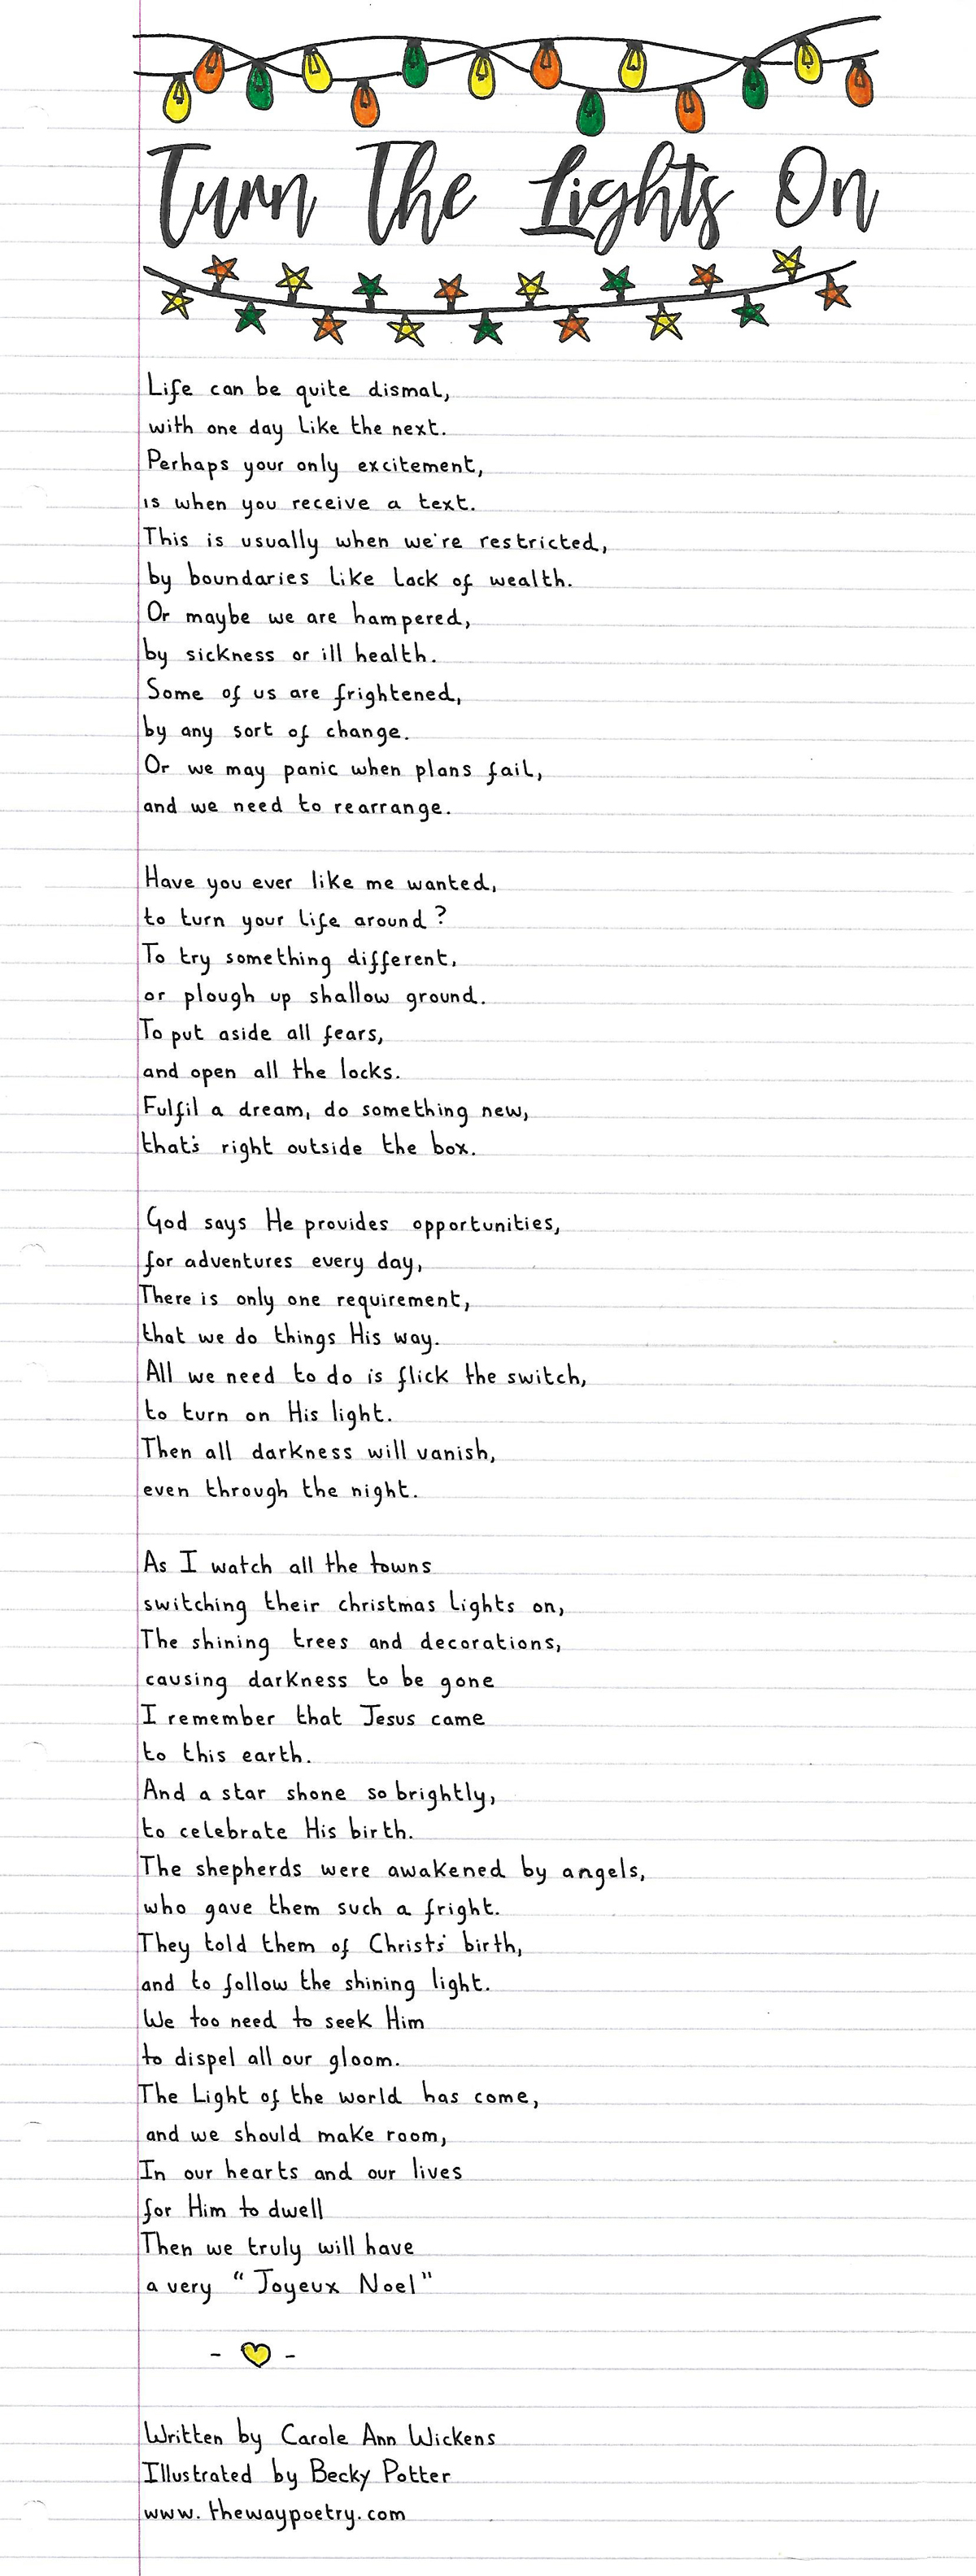 Turn The Lights On by Carole Ann Wickens